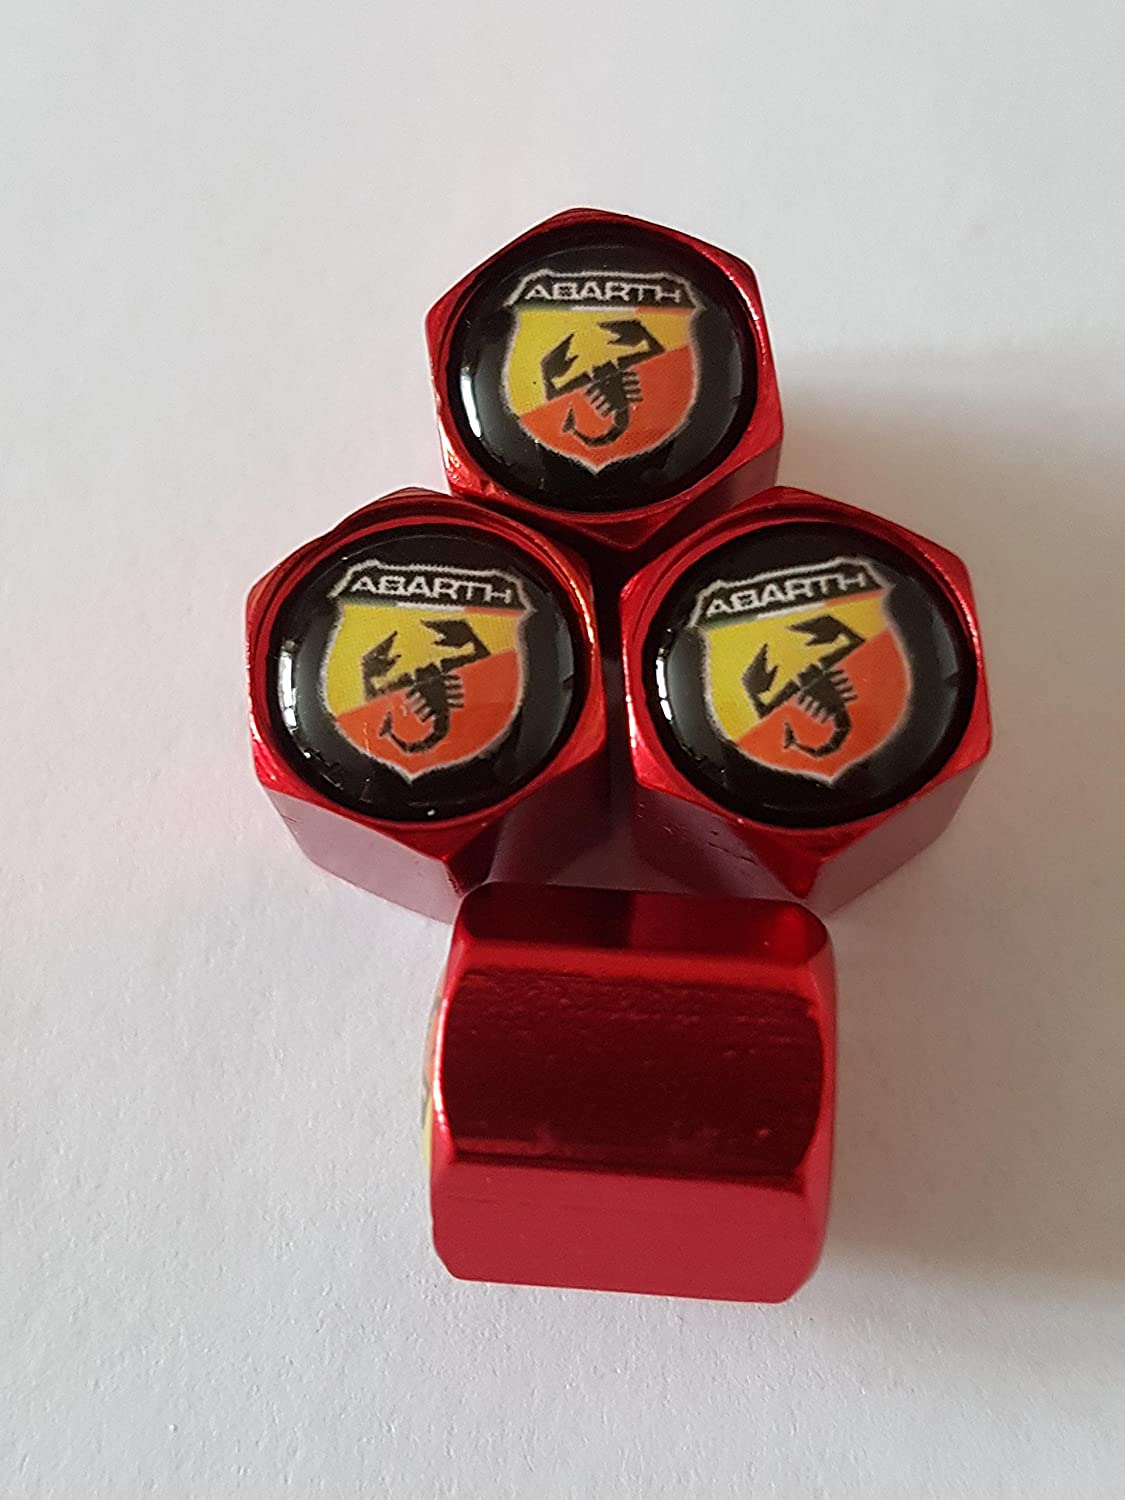 Speed Demons Abarth Fiat red deluxe alloy valve caps these dust caps fit all models Speed Demons ®